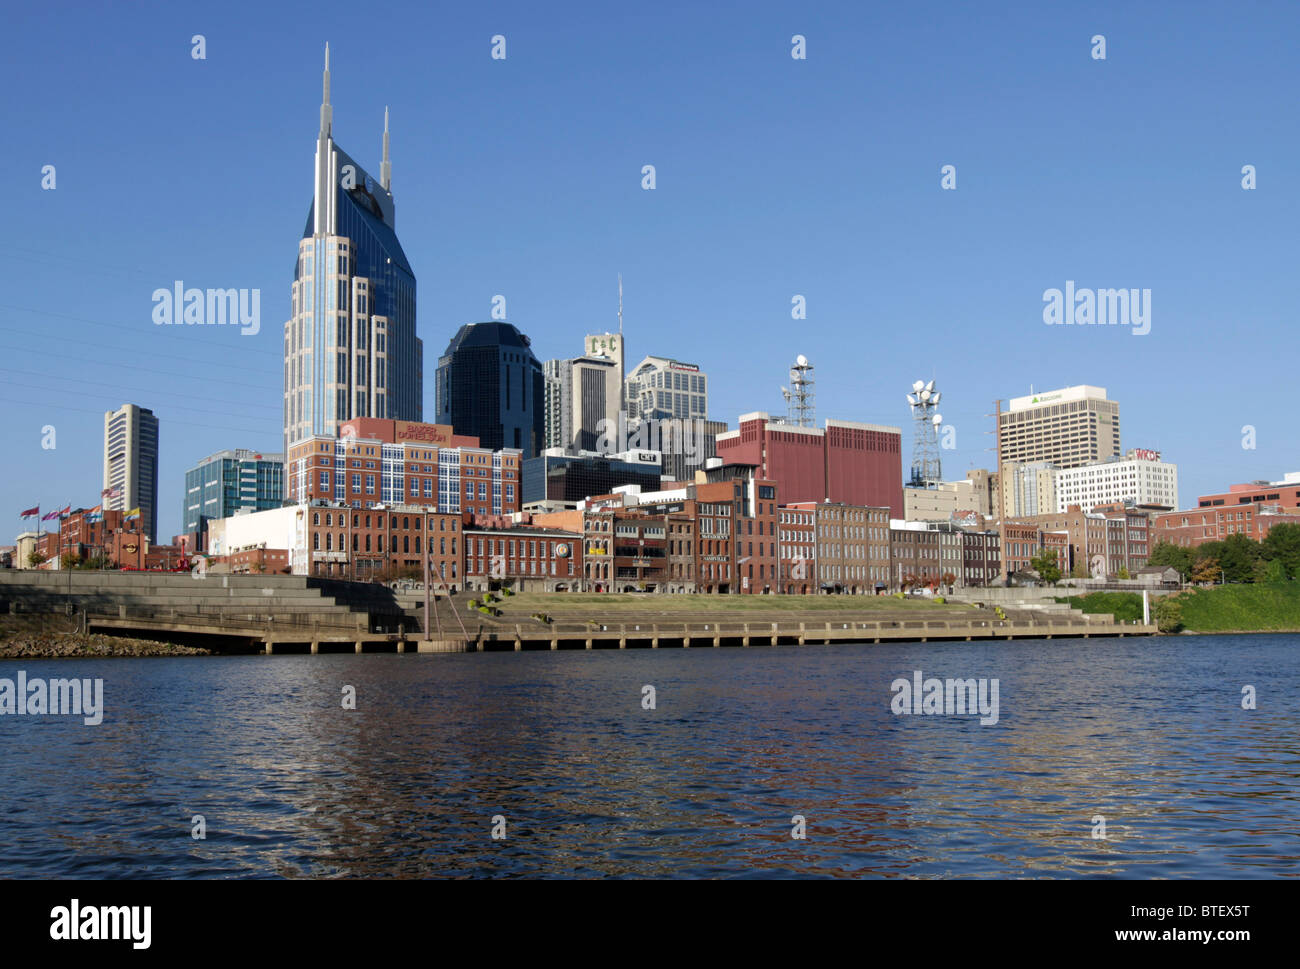 Skyline of Nashville with the AT&T corporate building towering over the historic district of Broadway - Stock Image